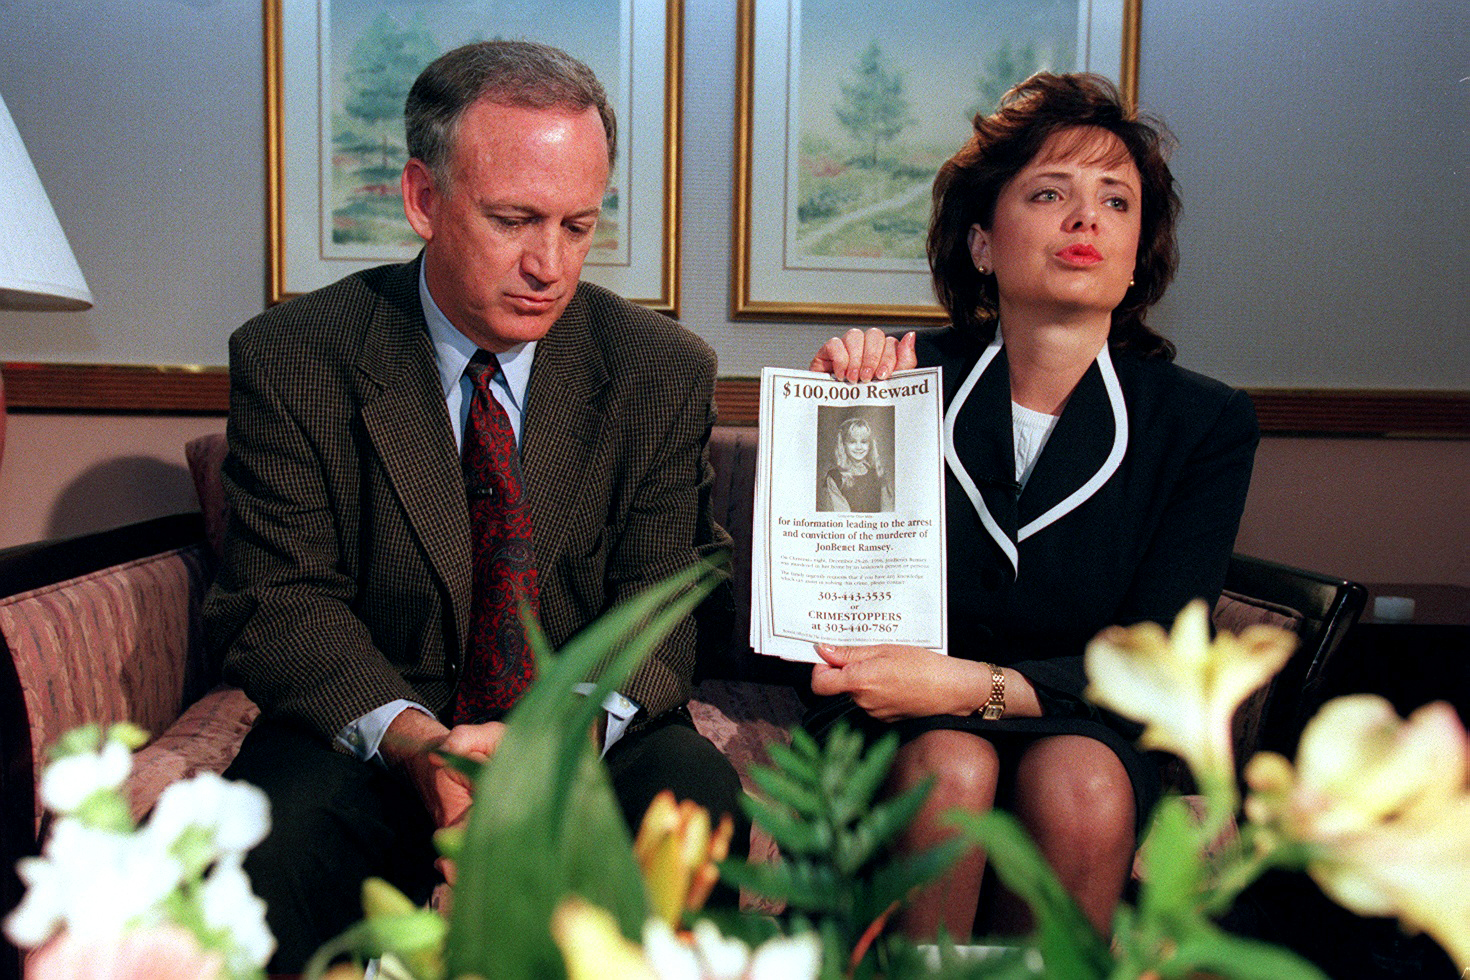 John and Patsy Ramsey, the parents of JonBenet Ramsey, meet reporters after four months of silence in Boulder on May 1, 1997. Patsy holds up a reward sign for information leading to the arrest of their daughter's murderer. Their 6-year-old daughter was found dead on Christmas night 1996. (Photo By Helen H. Richardson/ The Denver Post)